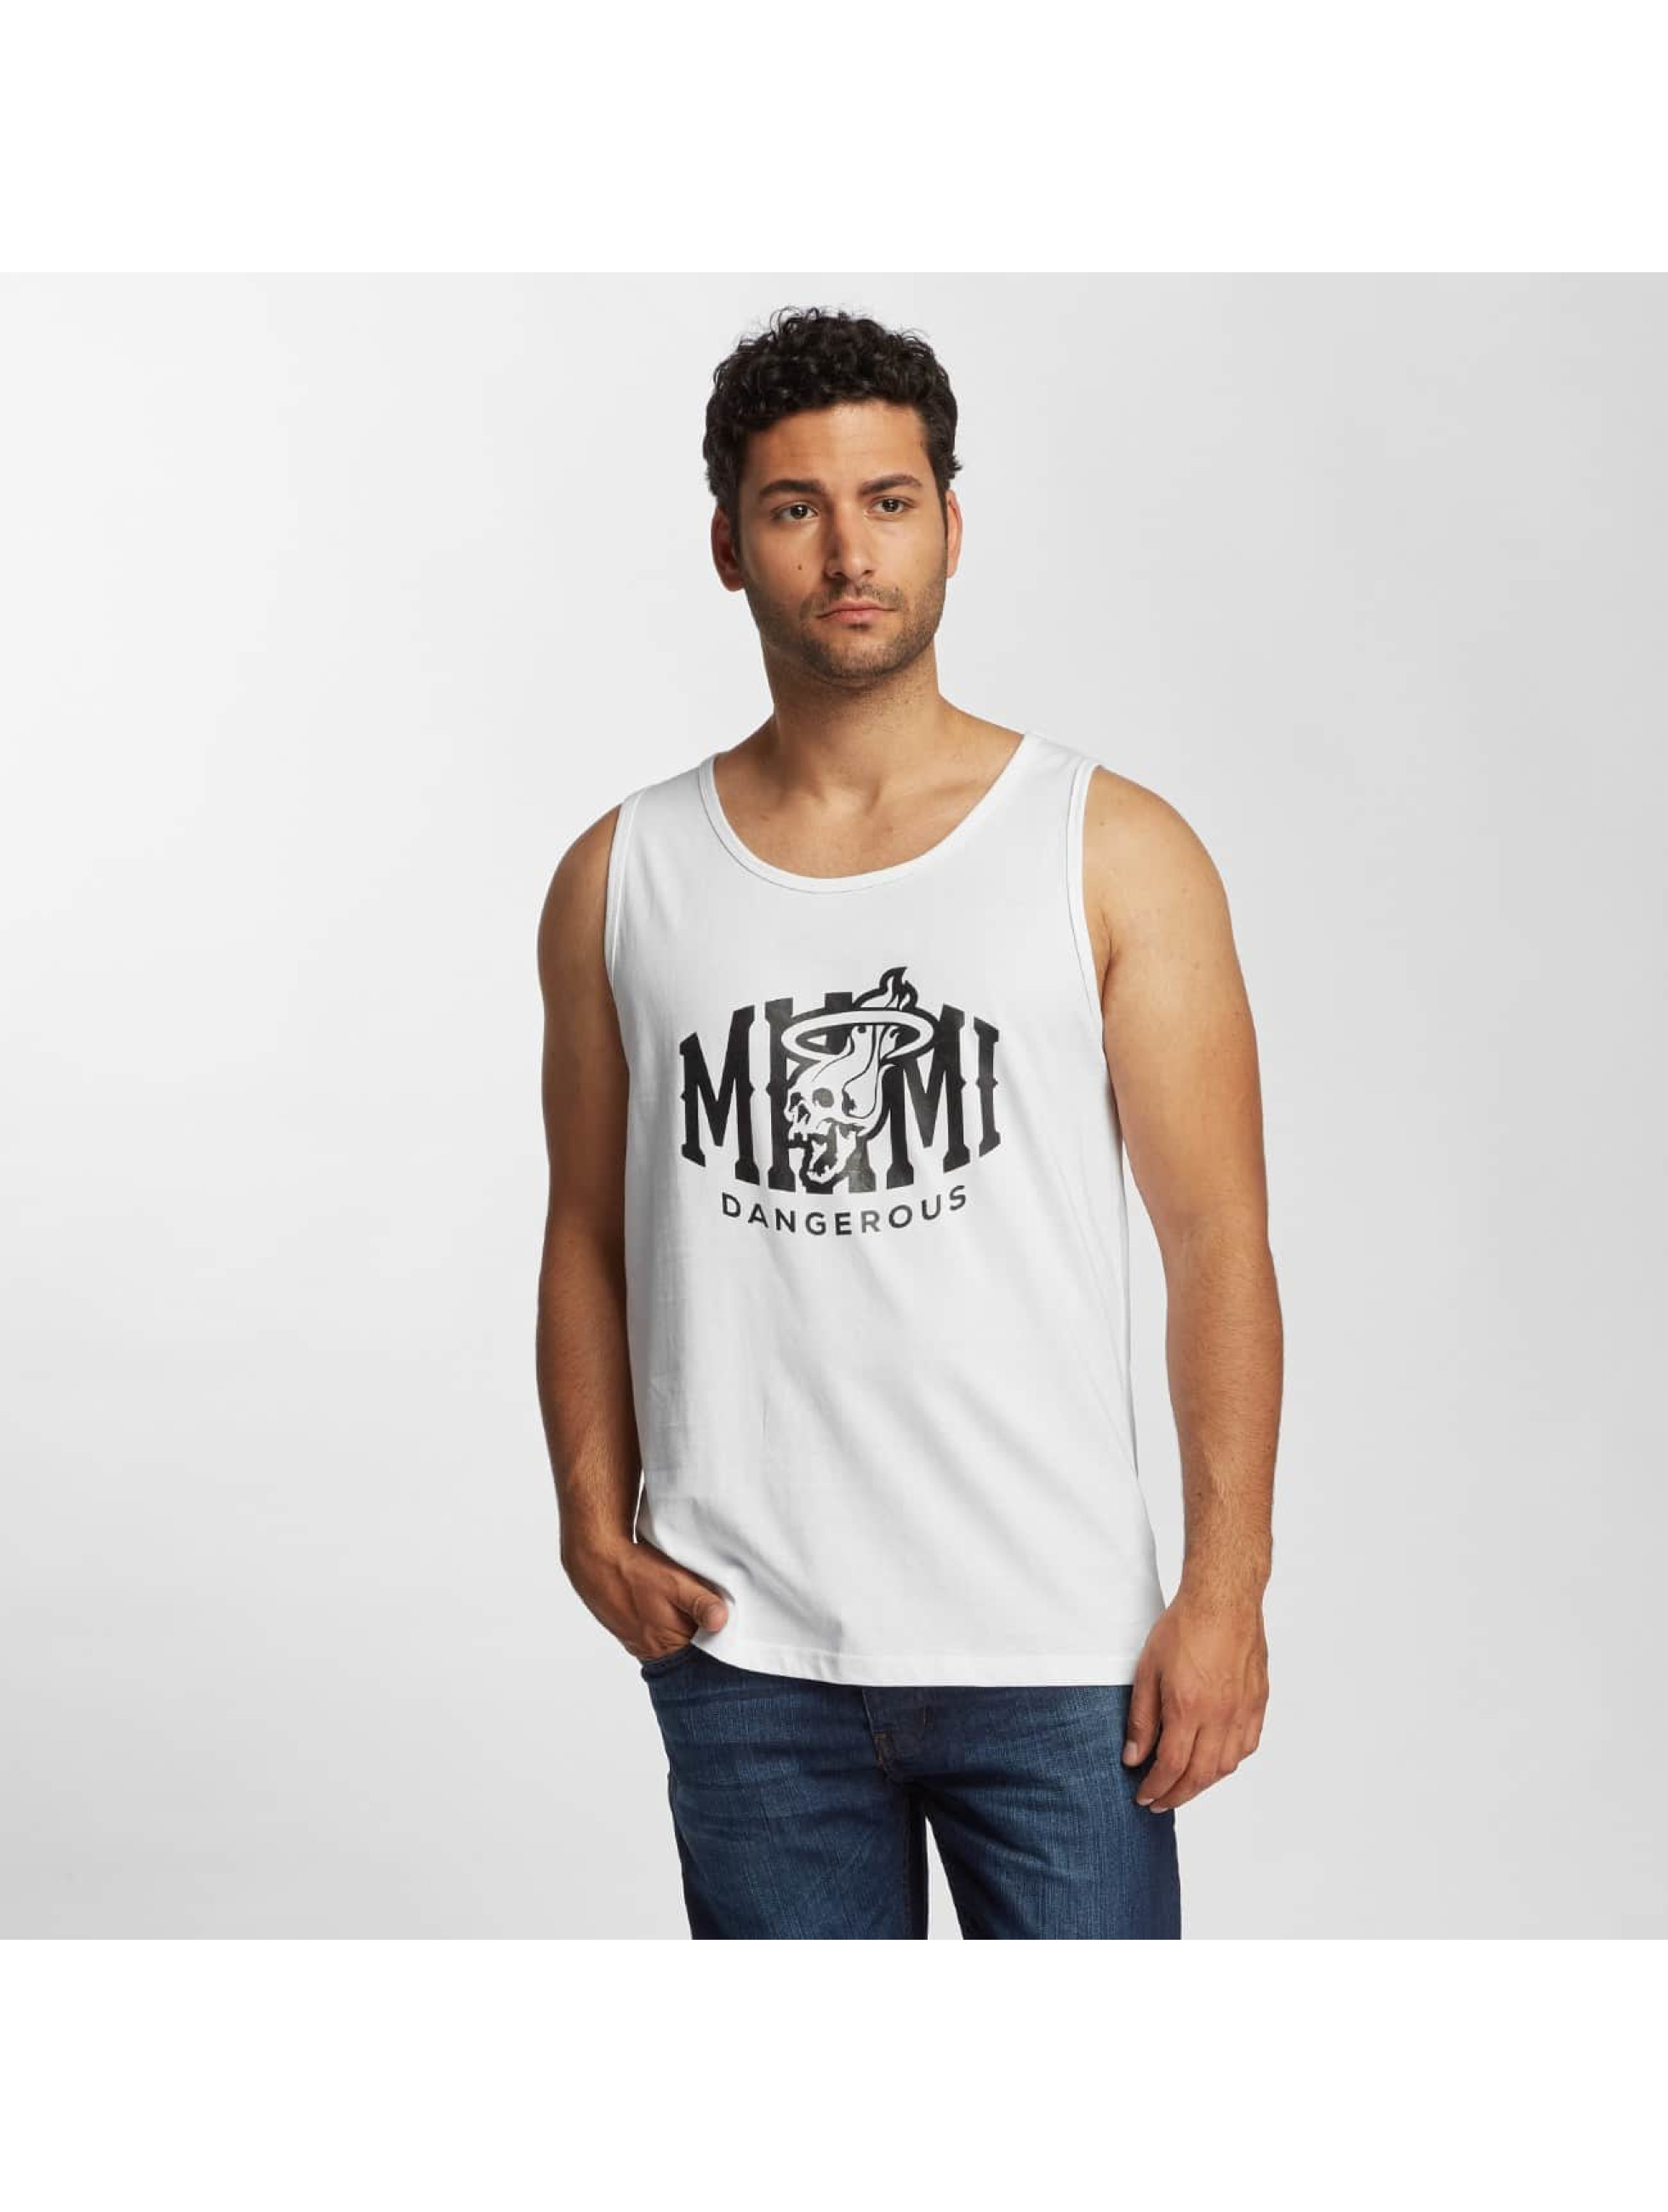 Dangerous DNGRS / Tank Tops Miamiskull in white S